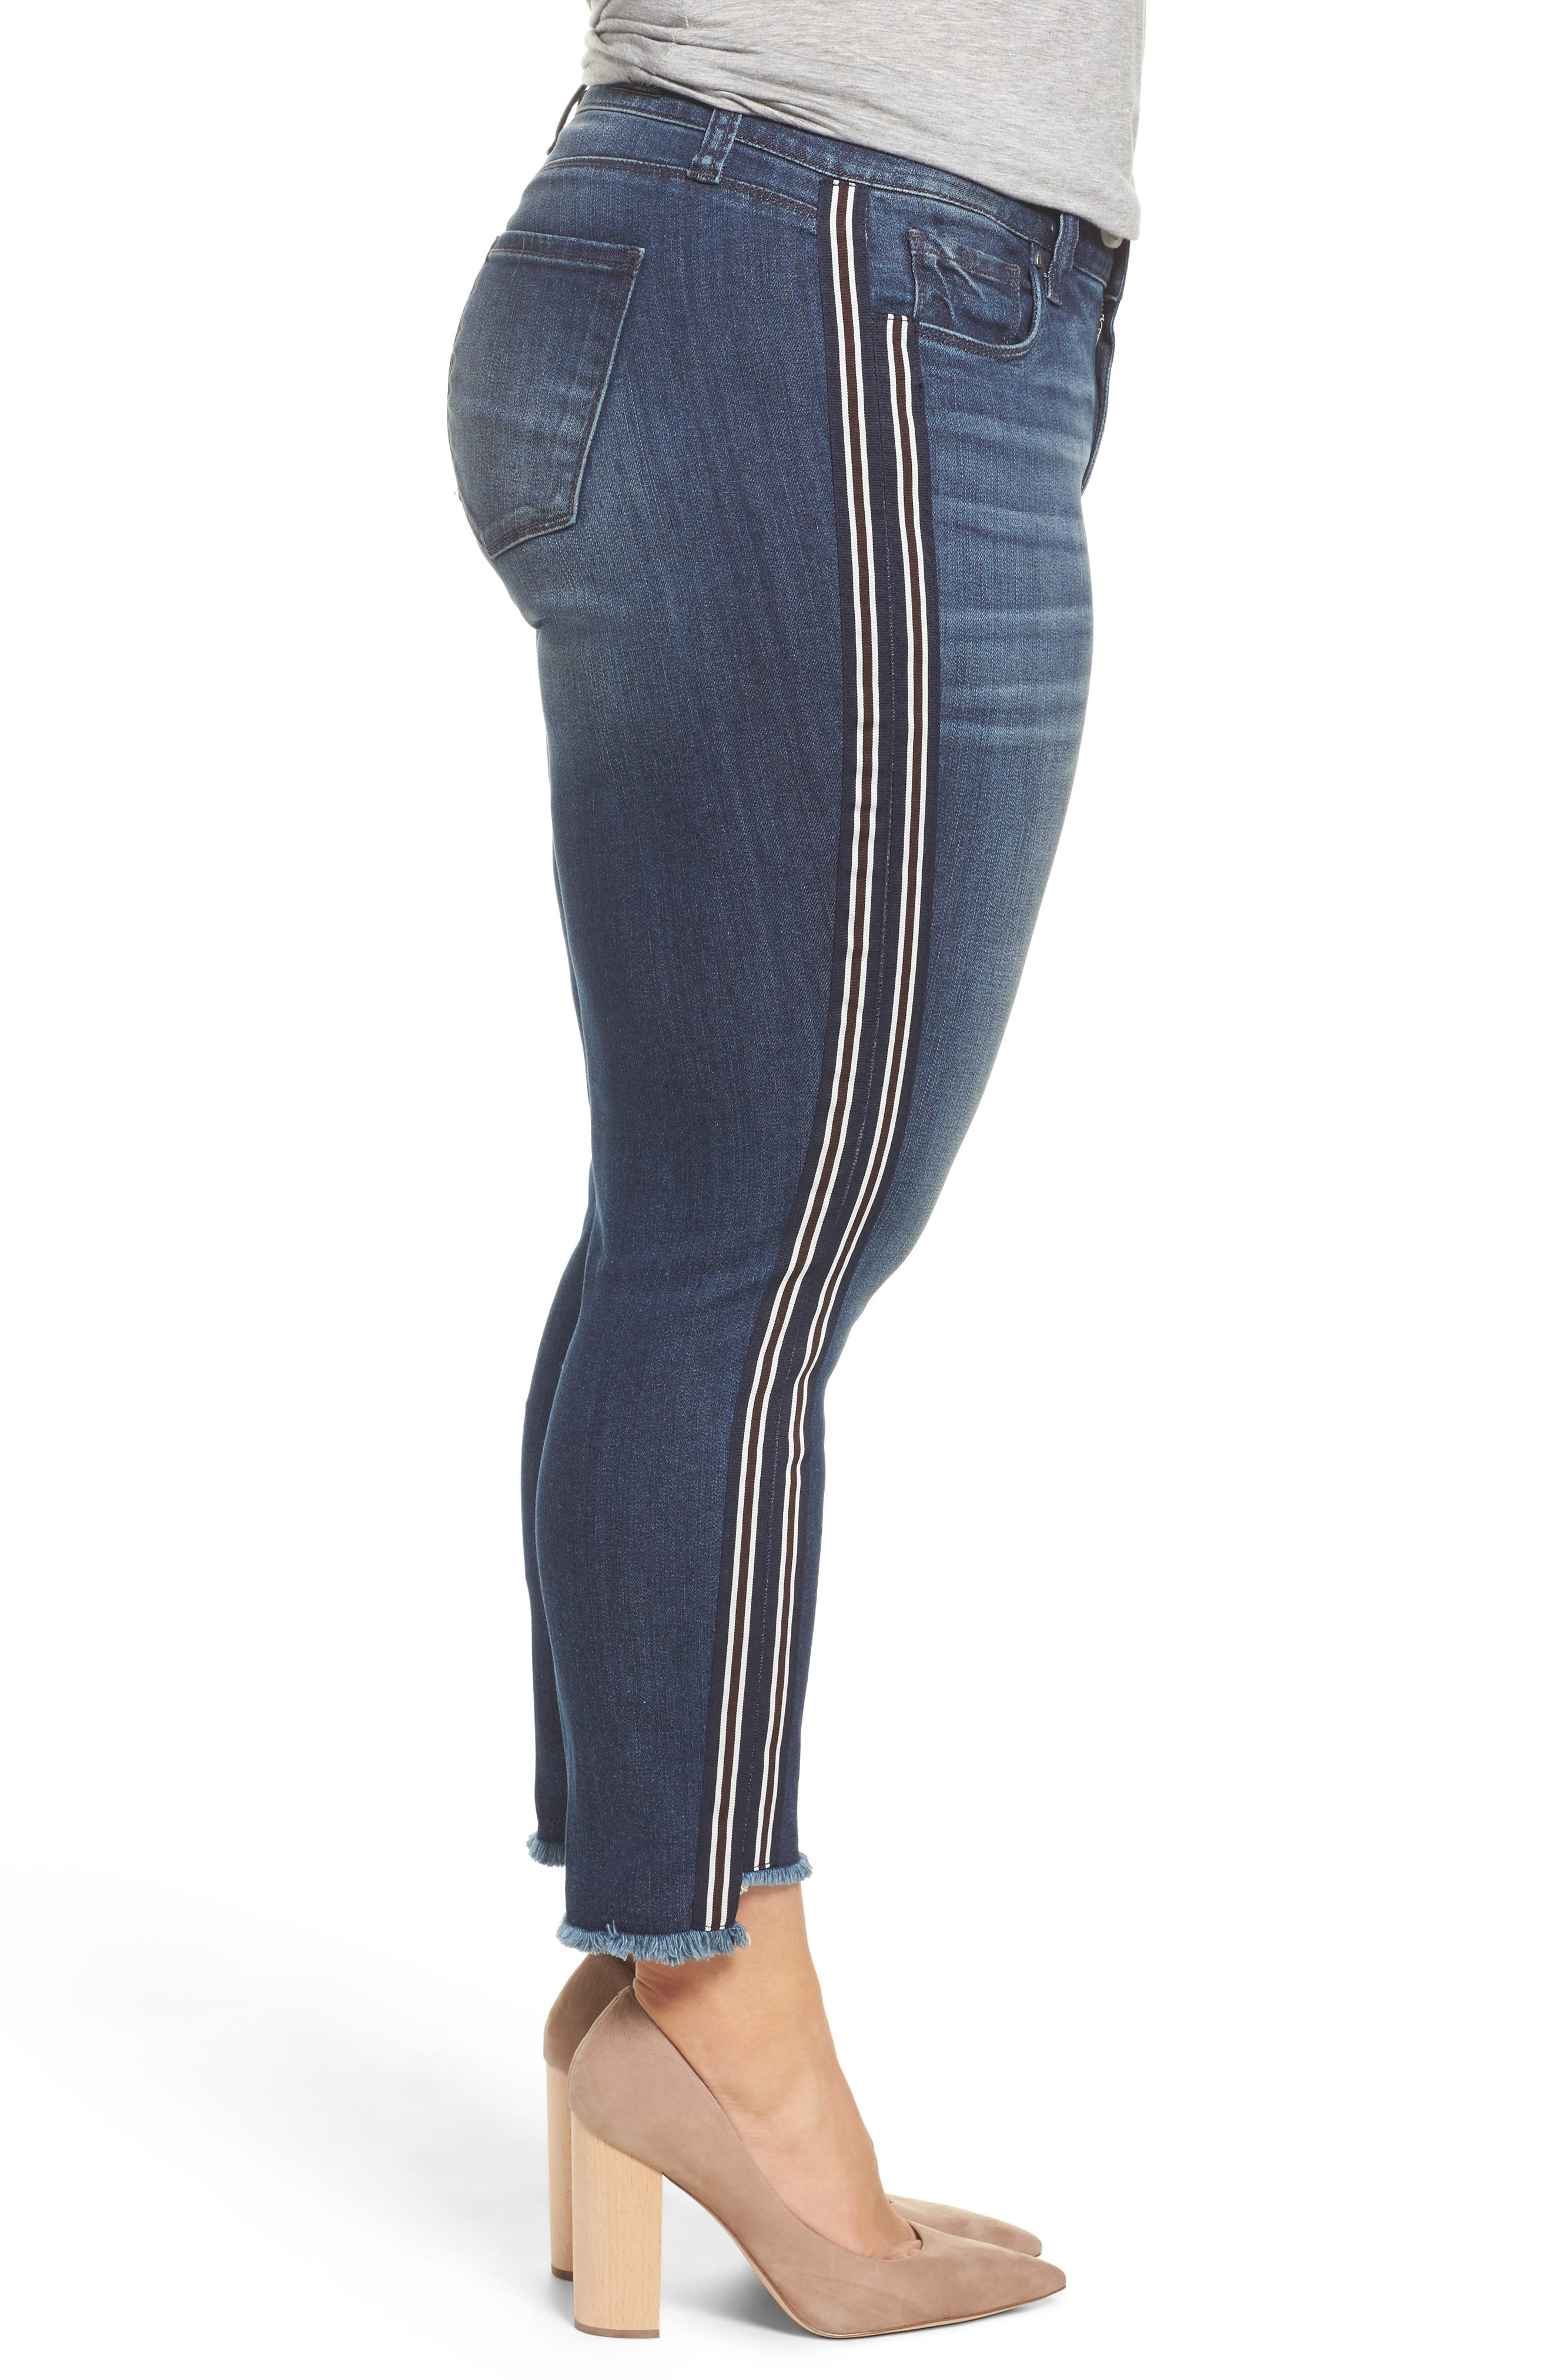 Alternate Image 3  - KUT from the Kloth Reese Side Stripe Uneven Ankle Jeans (Analyzed) (Plus Size)